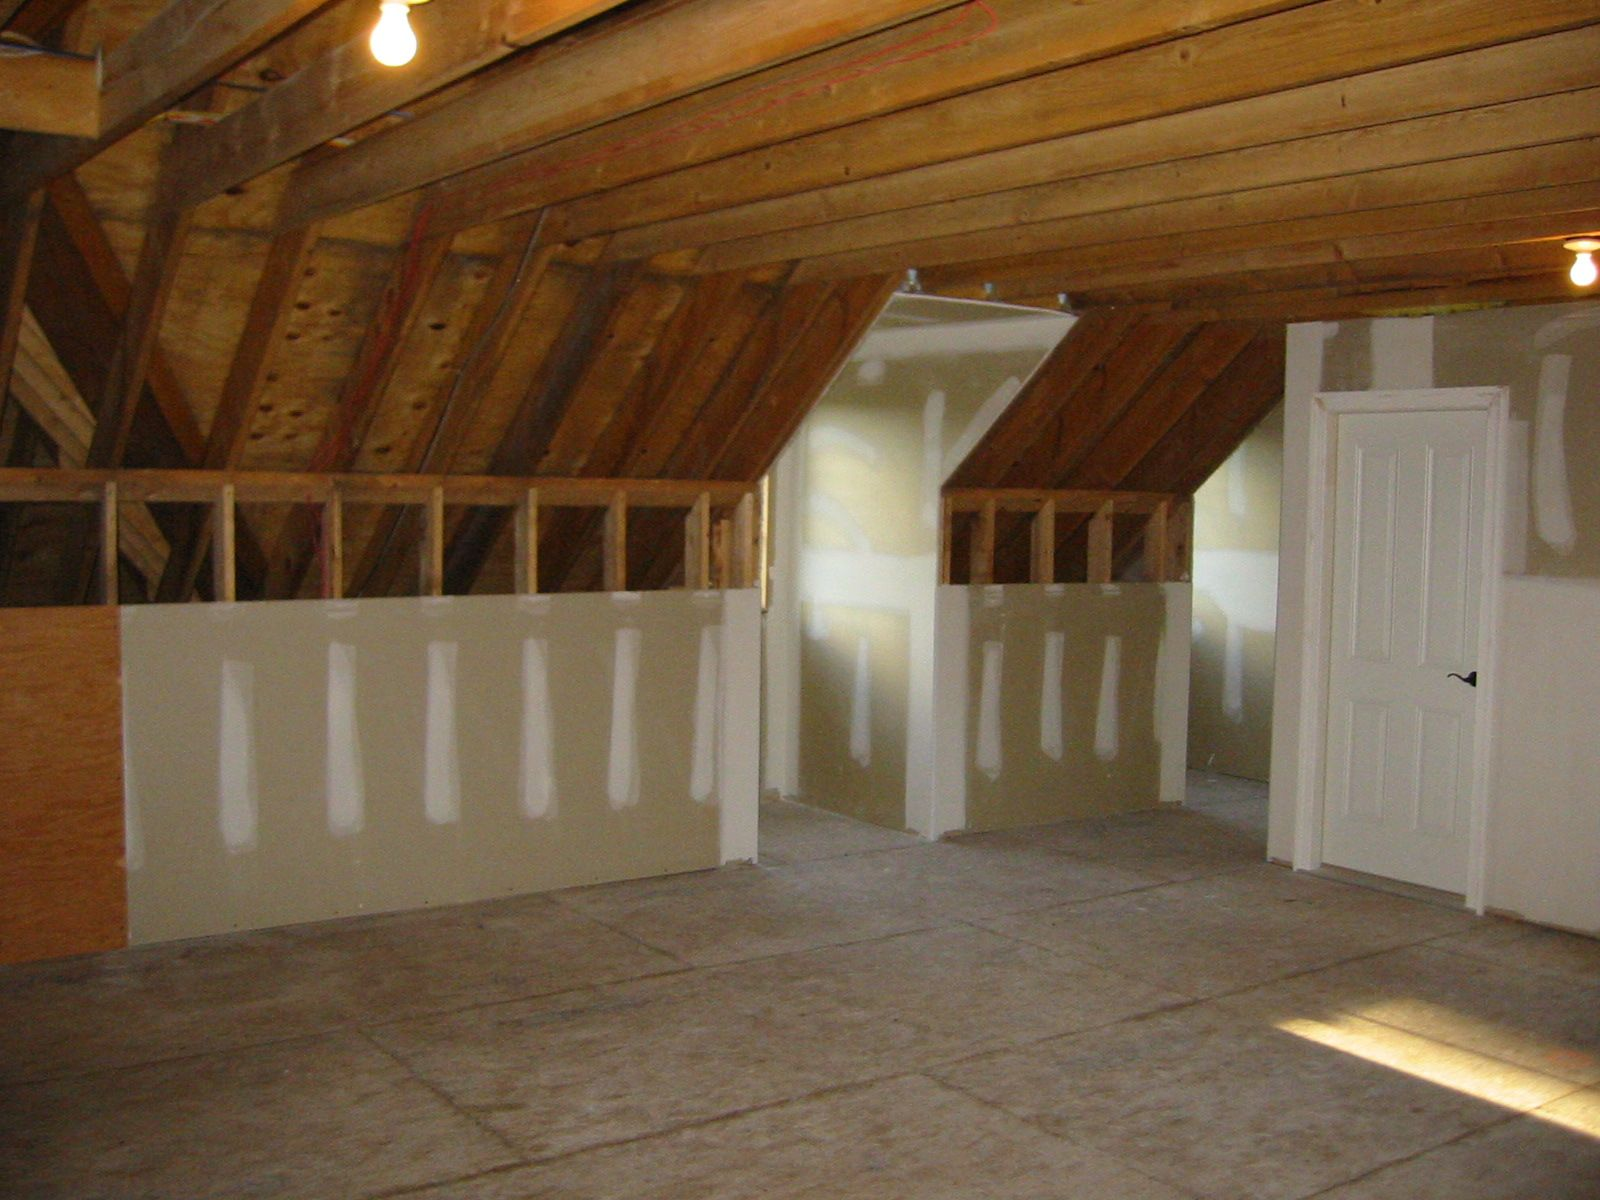 Remodeling unfinished attic space can be a great way to add value to